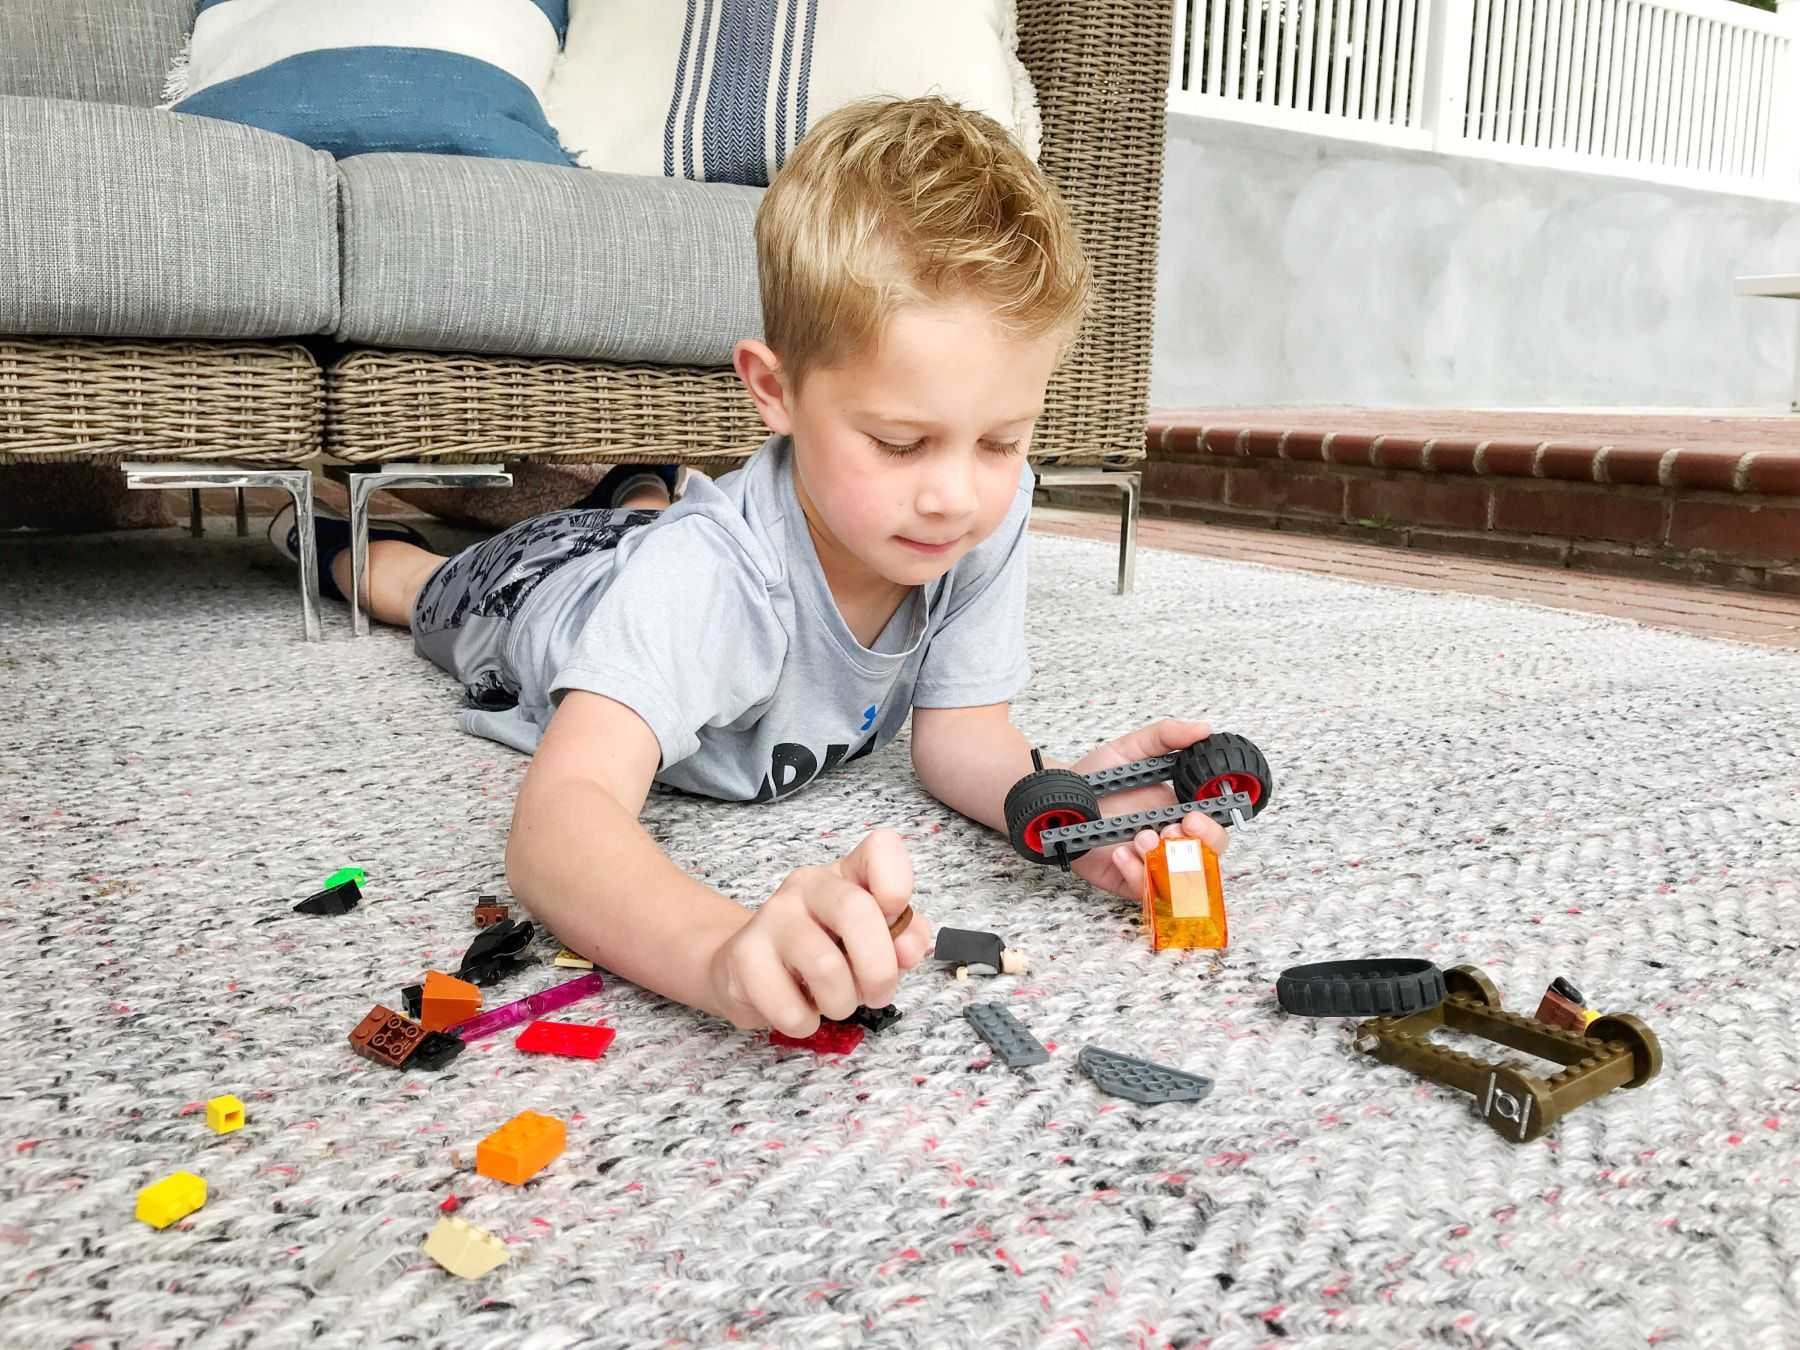 Boy playing on indoor outdoor carpet